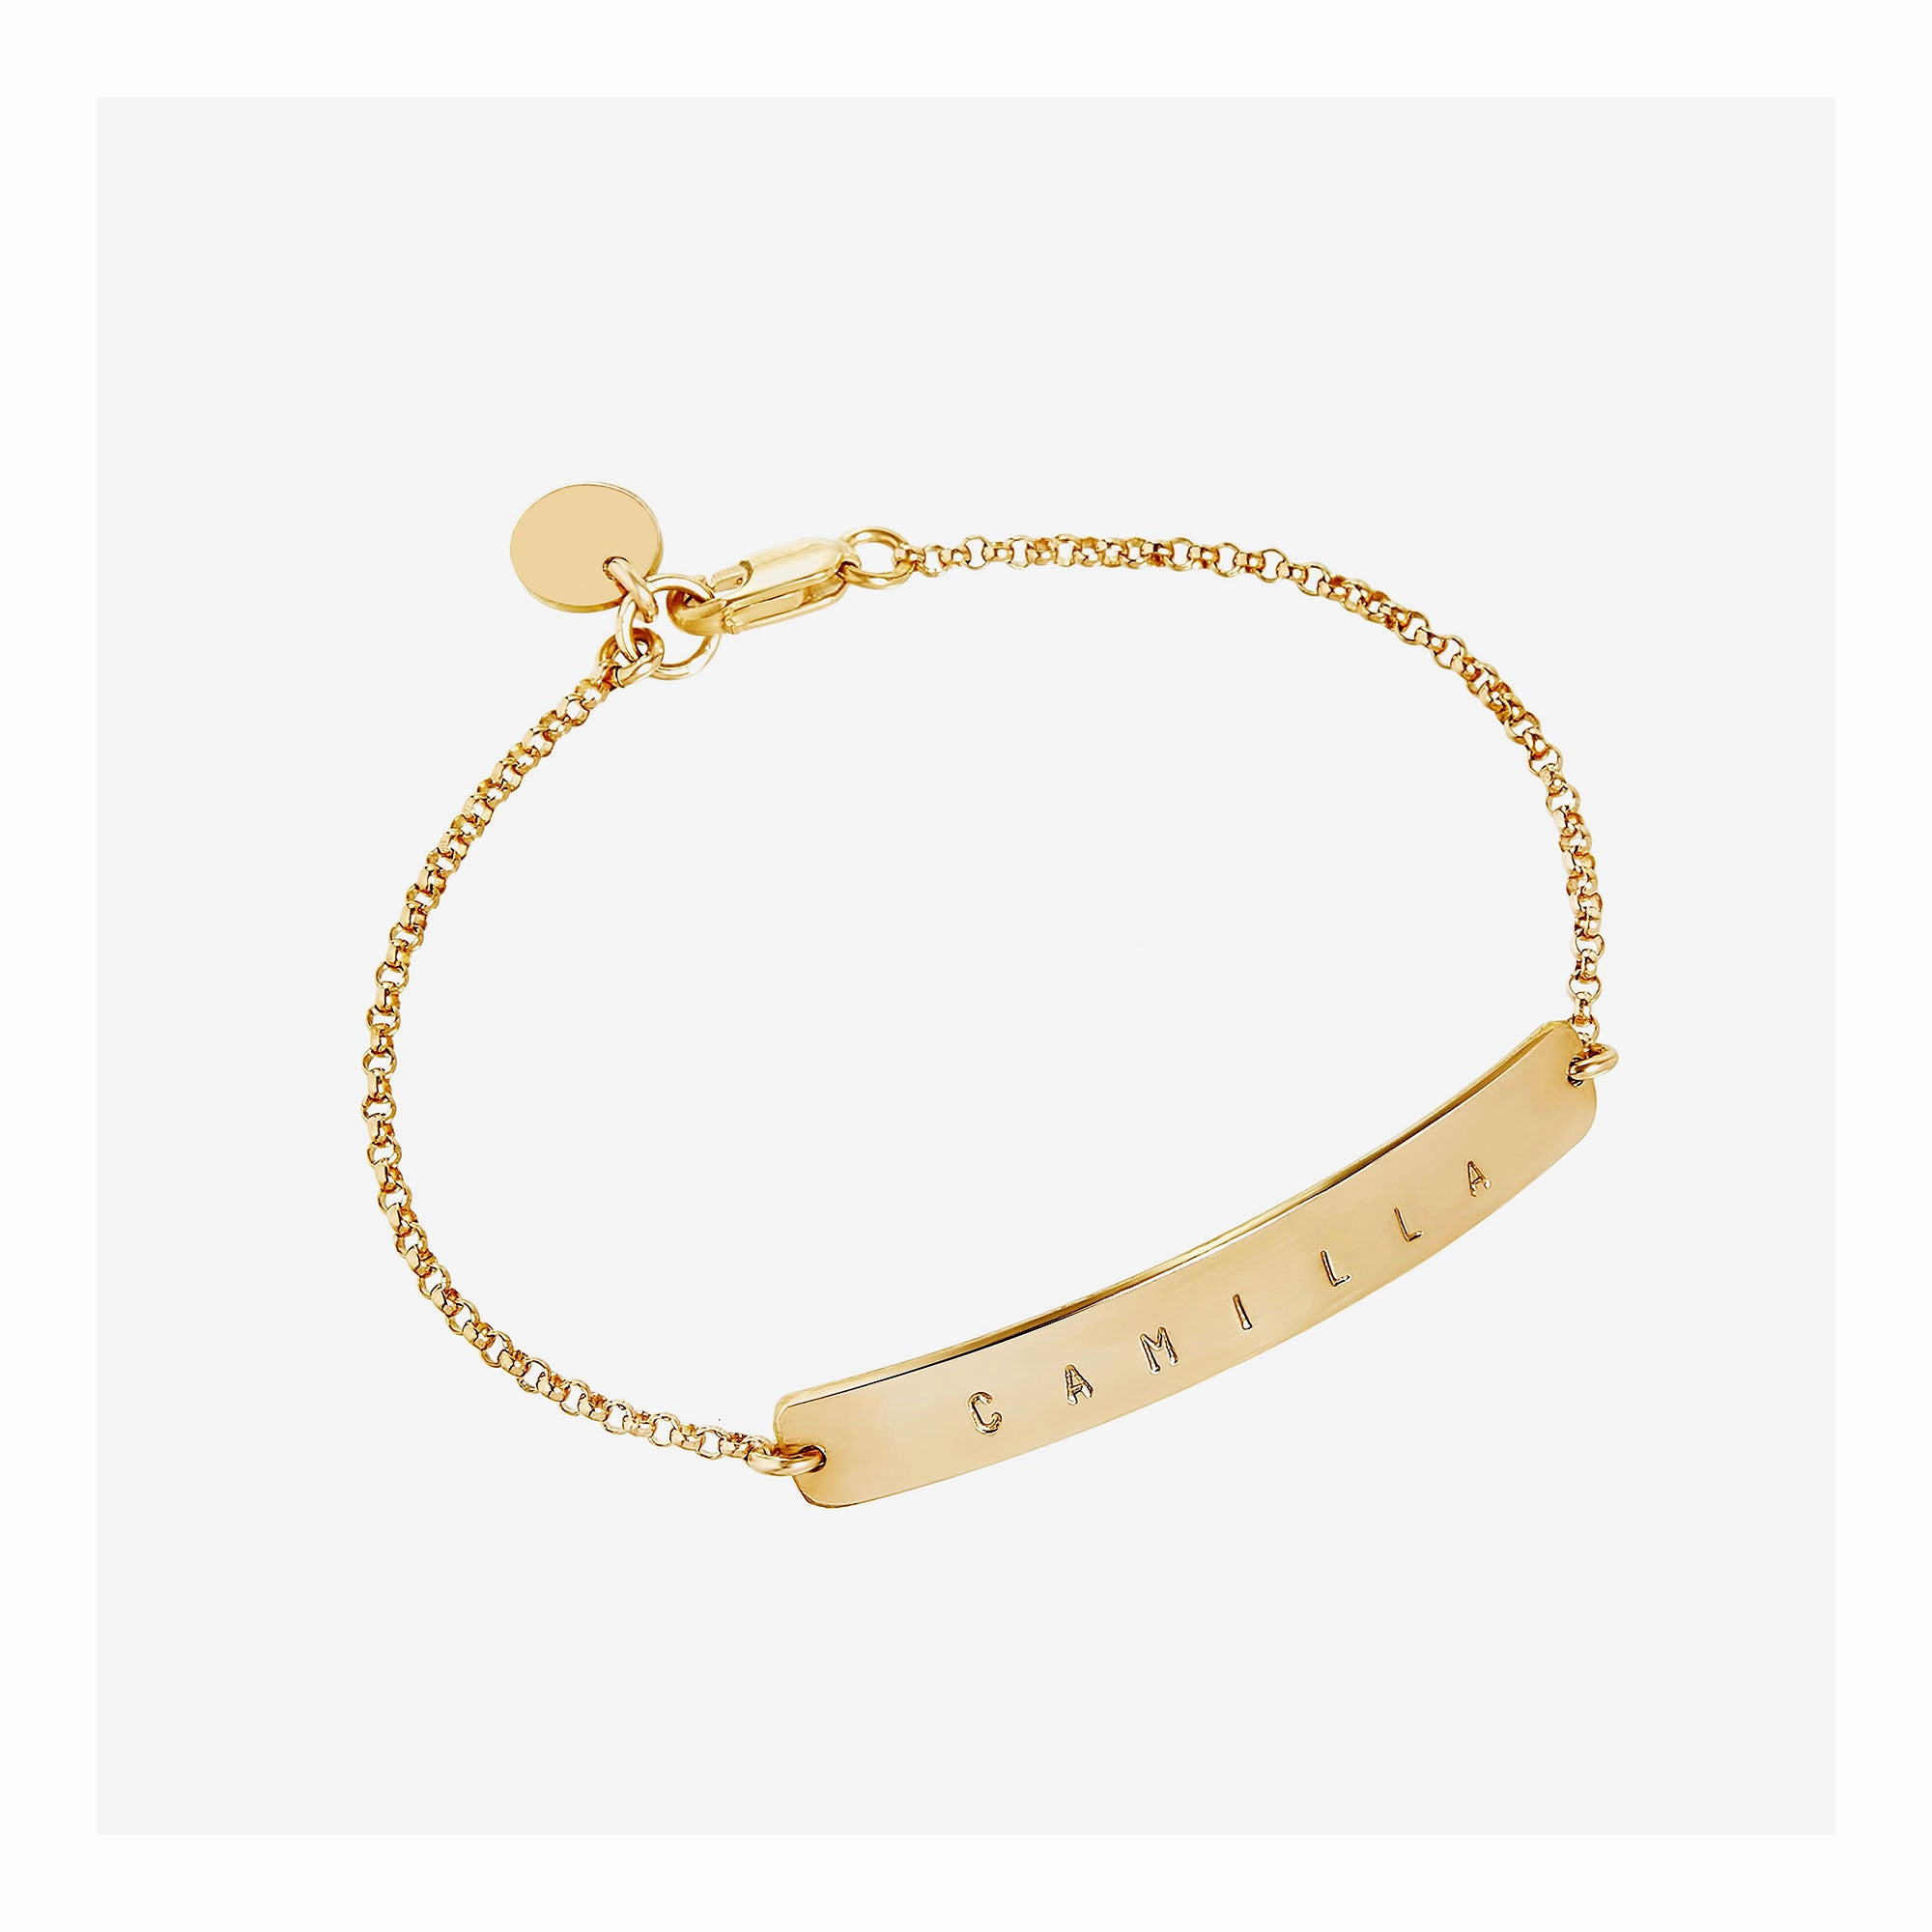 Name bar bracelet with larger bar.  Custom made in 14k gold filled metal